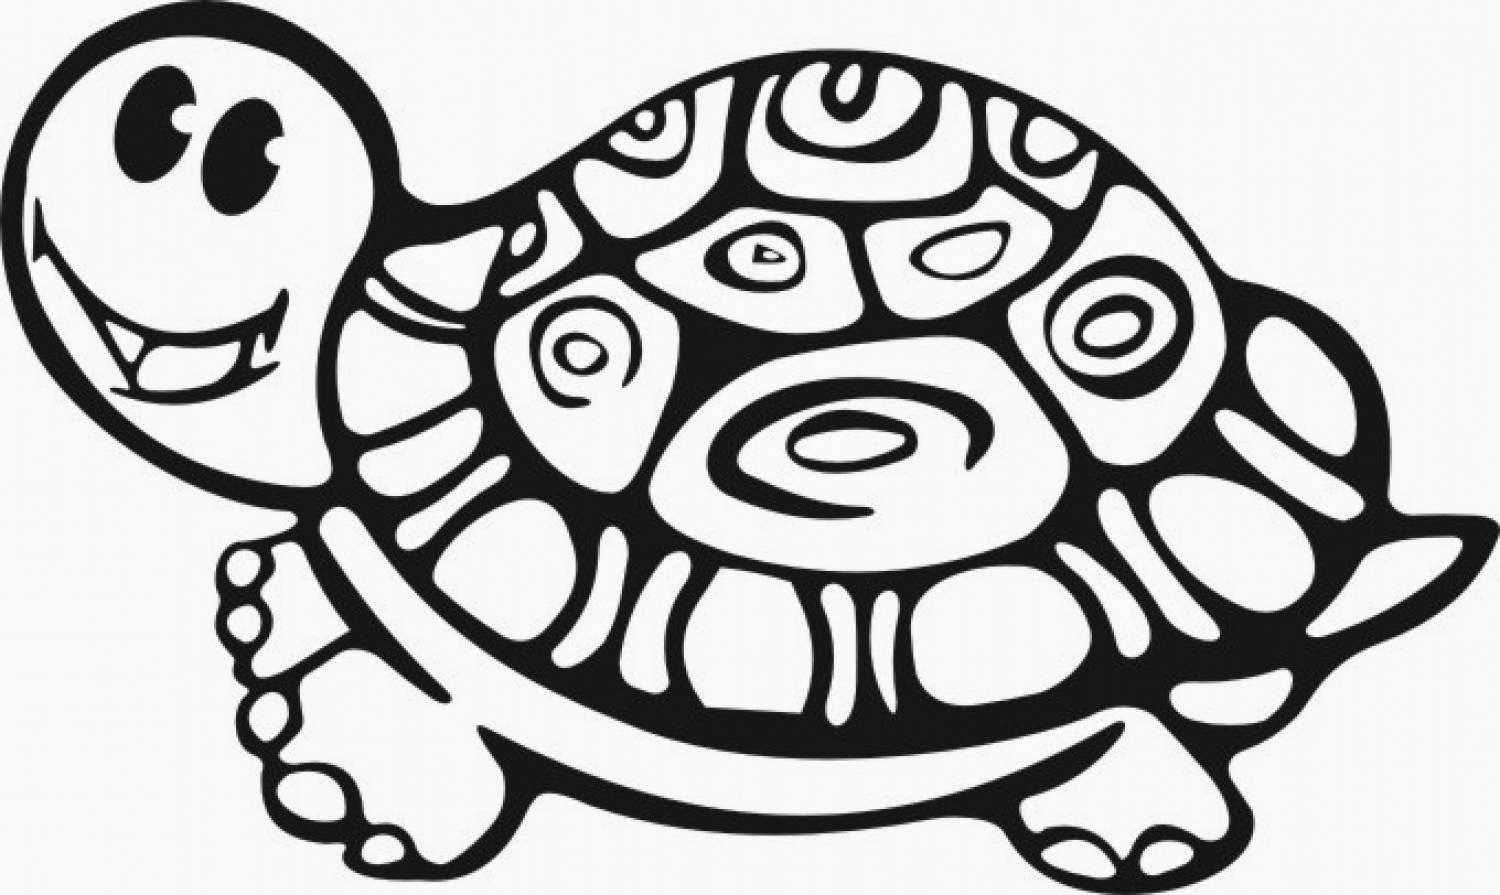 tortoise coloring page turtles to print for free turtles kids coloring pages page coloring tortoise